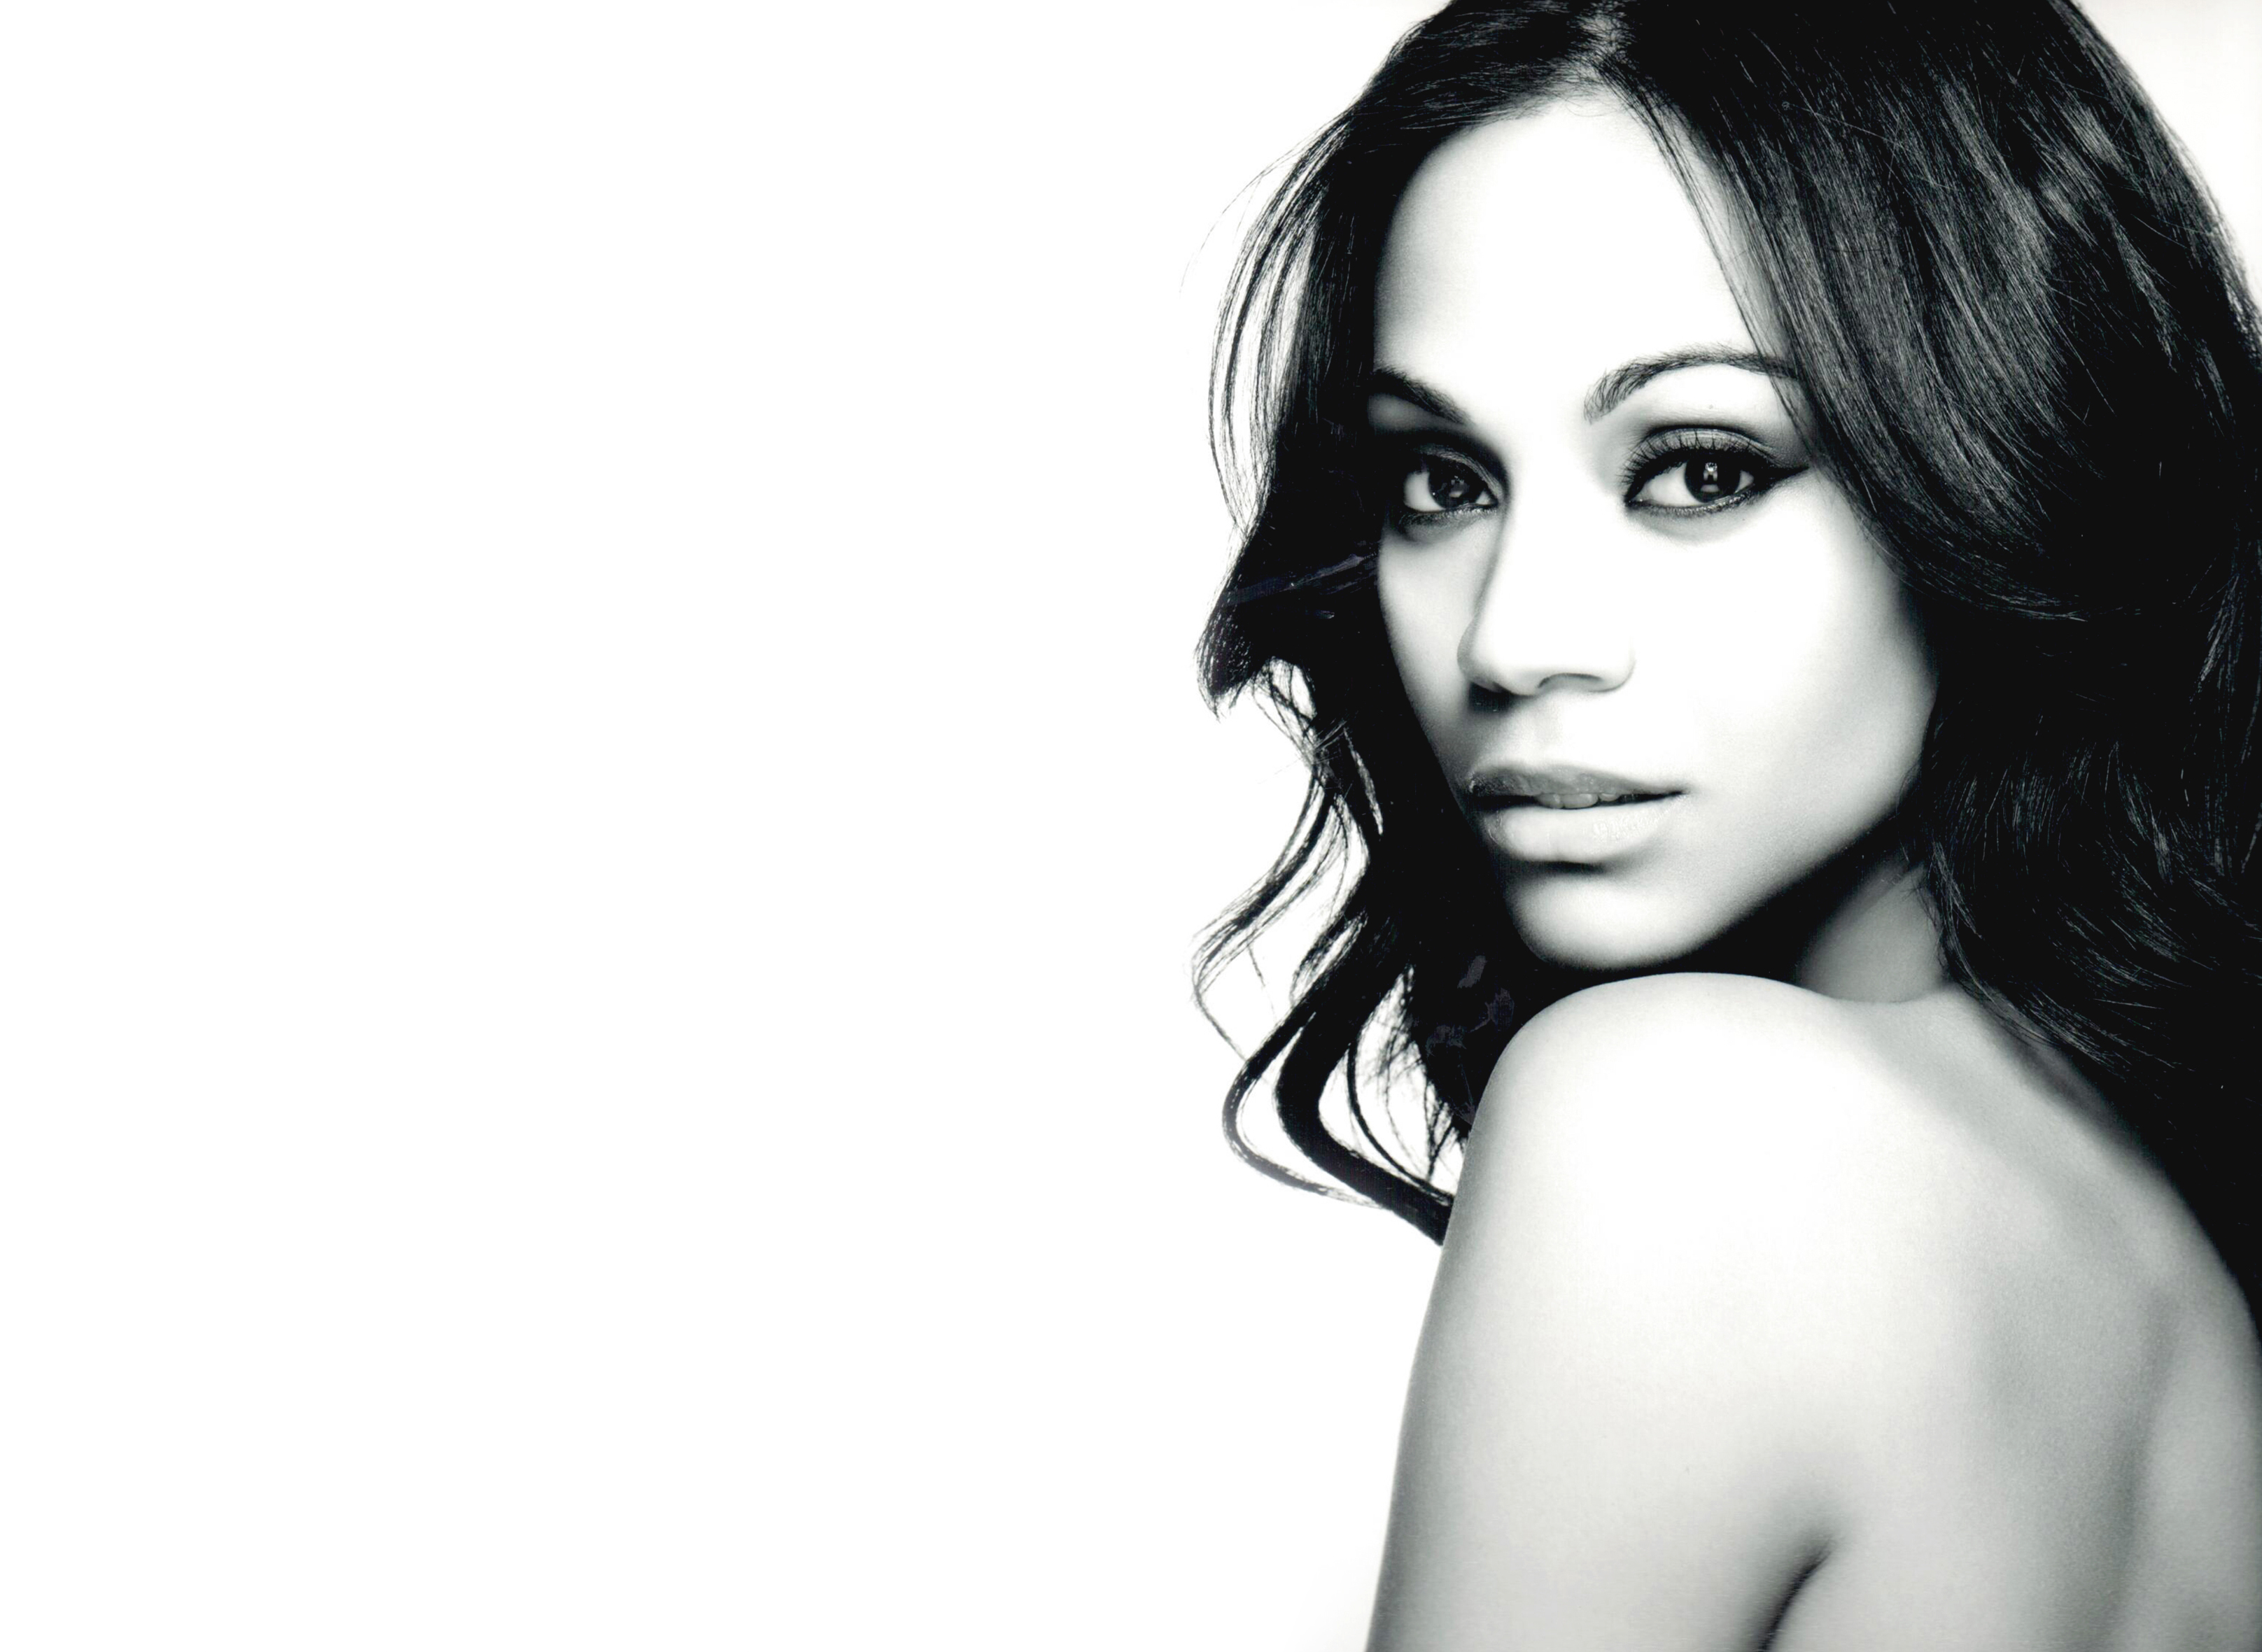 Zoe saldana hd wallpapers for desktop download - Zoe wallpaper ...